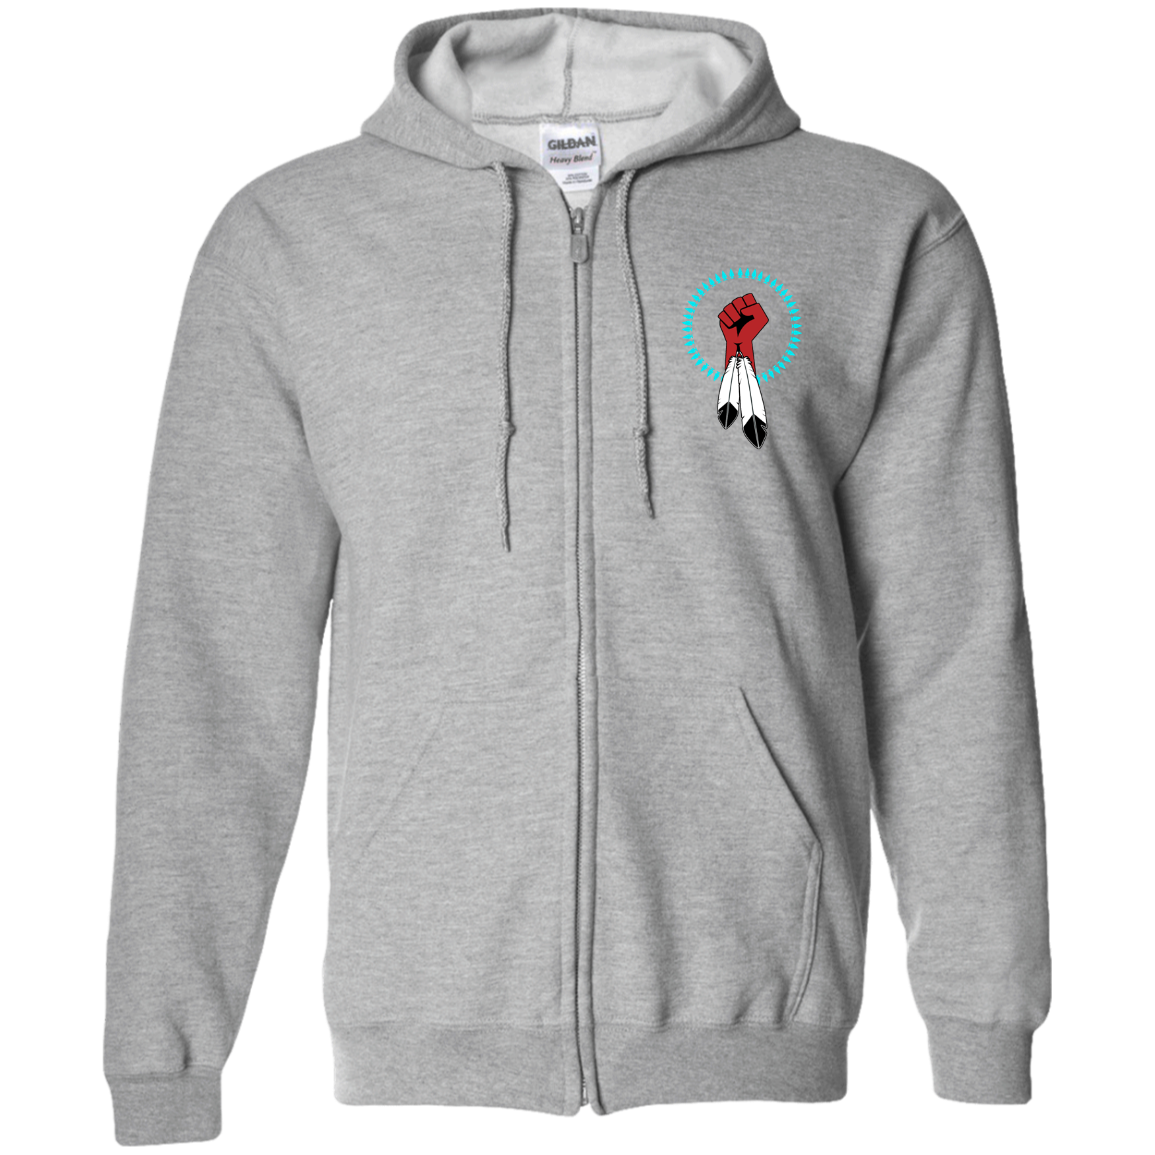 N8V MOVEMENT Zip Up Hooded Sweatshirt